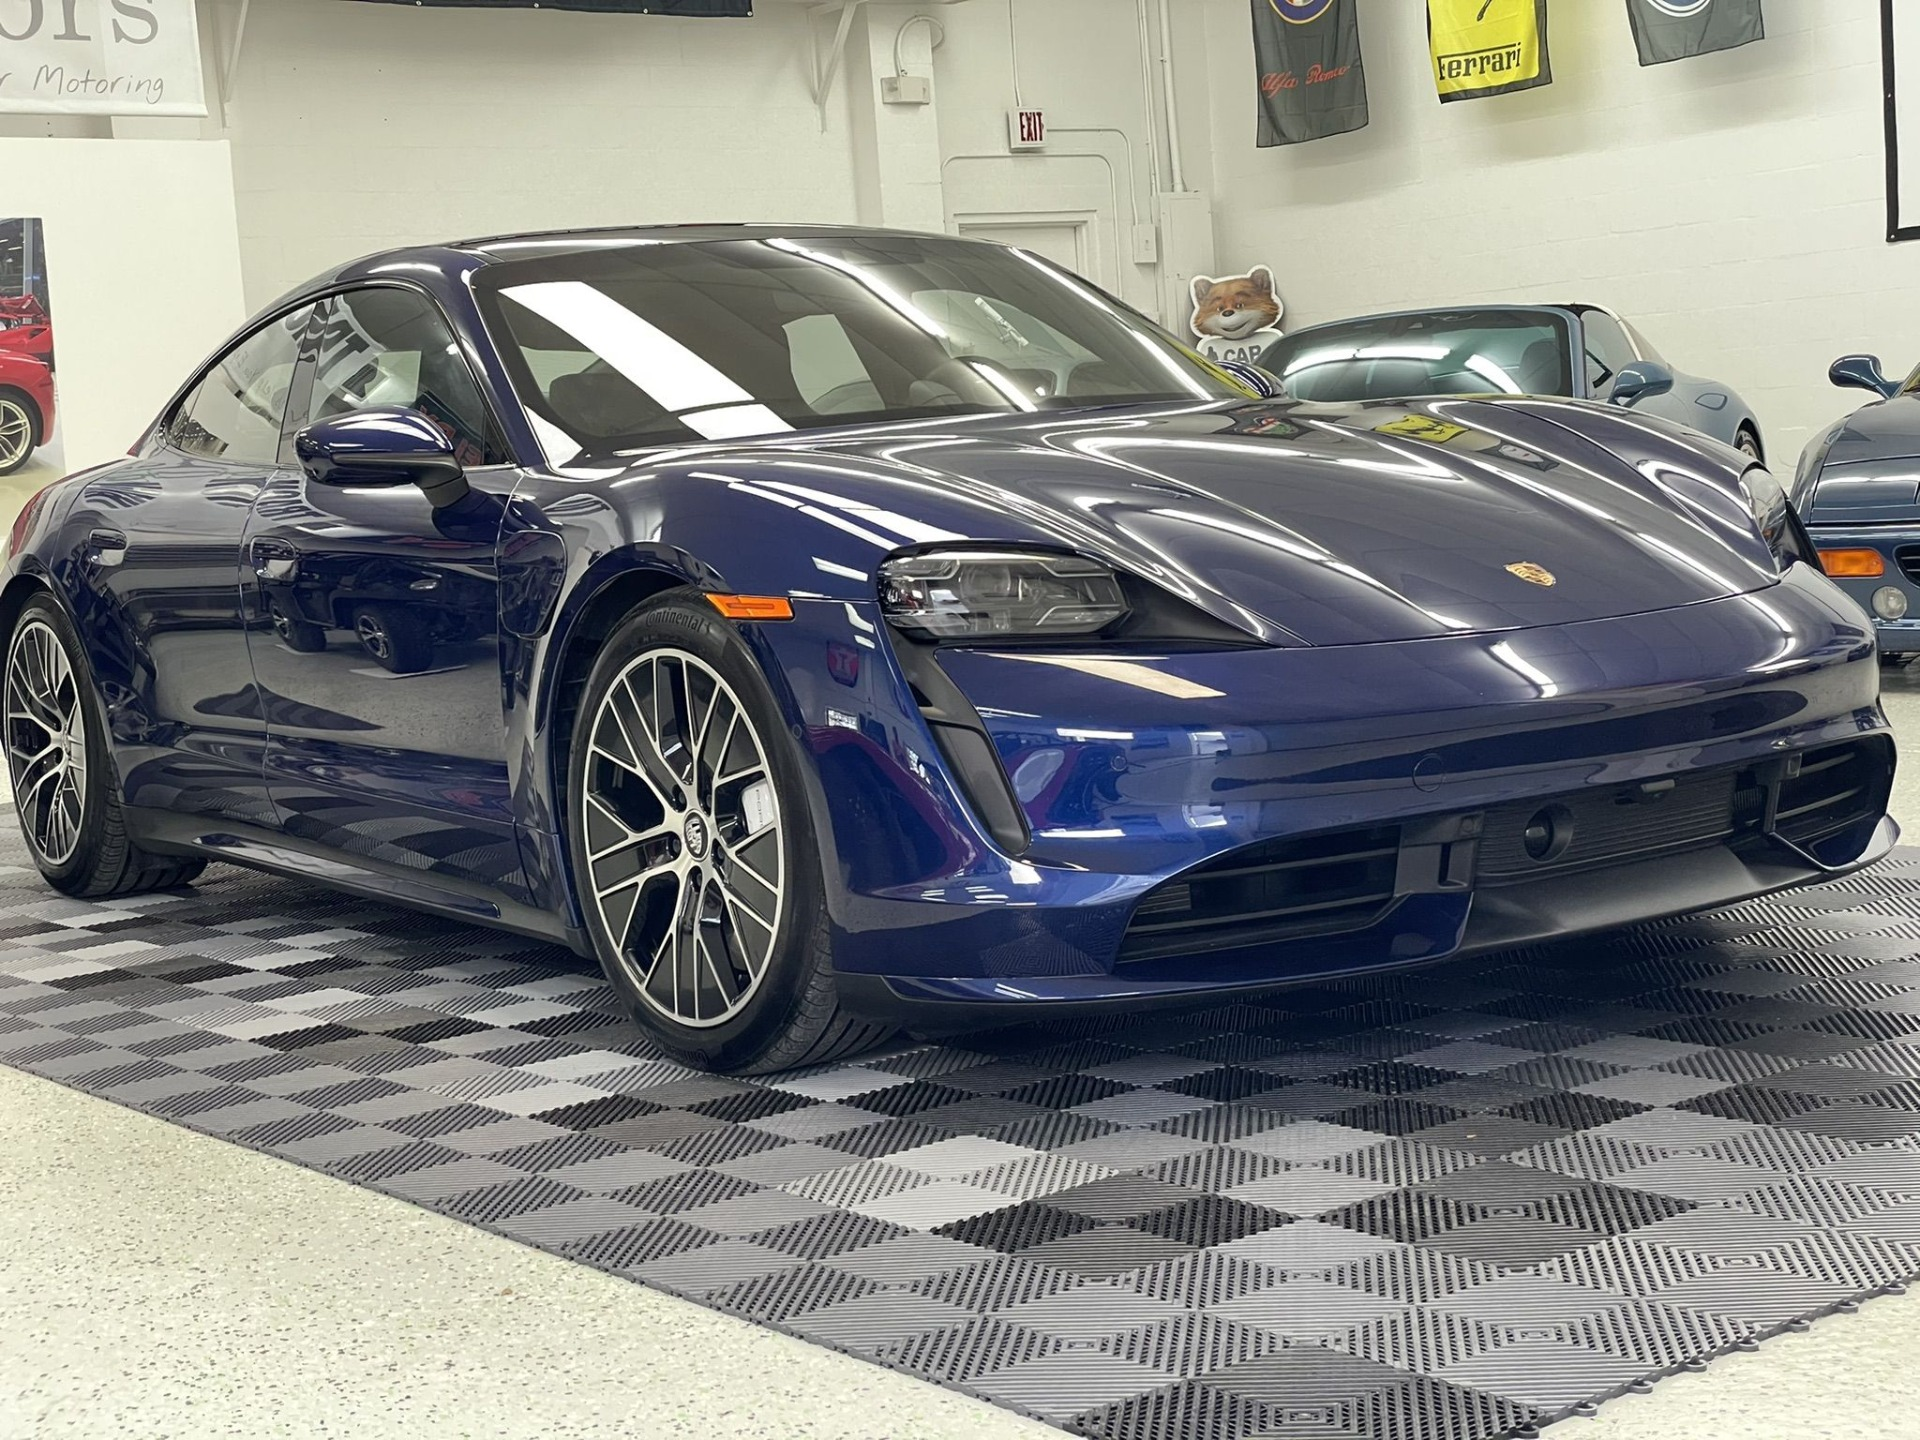 Used 2020 Porsche Taycan Turbo for sale Sold at Track & Field Motors in Safety Harbor FL 34695 1